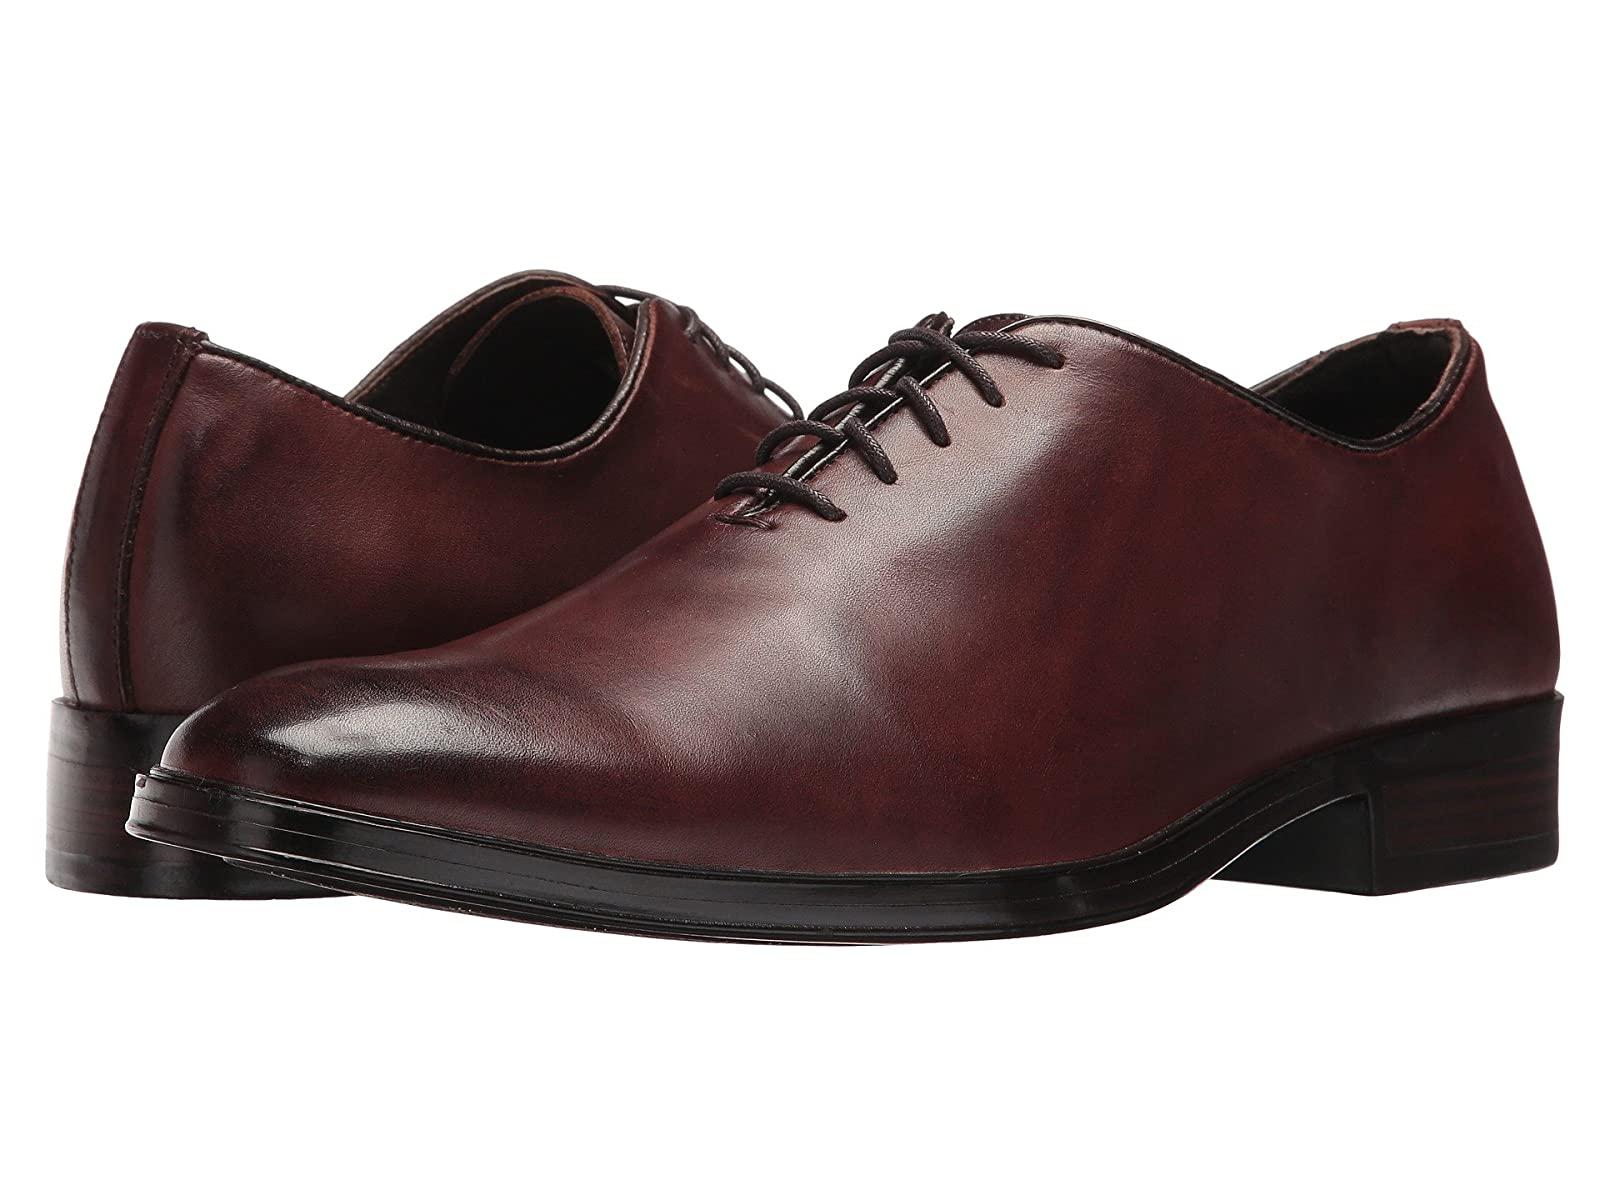 Mark Nason Traditional Dress - HopperAtmospheric grades have affordable shoes